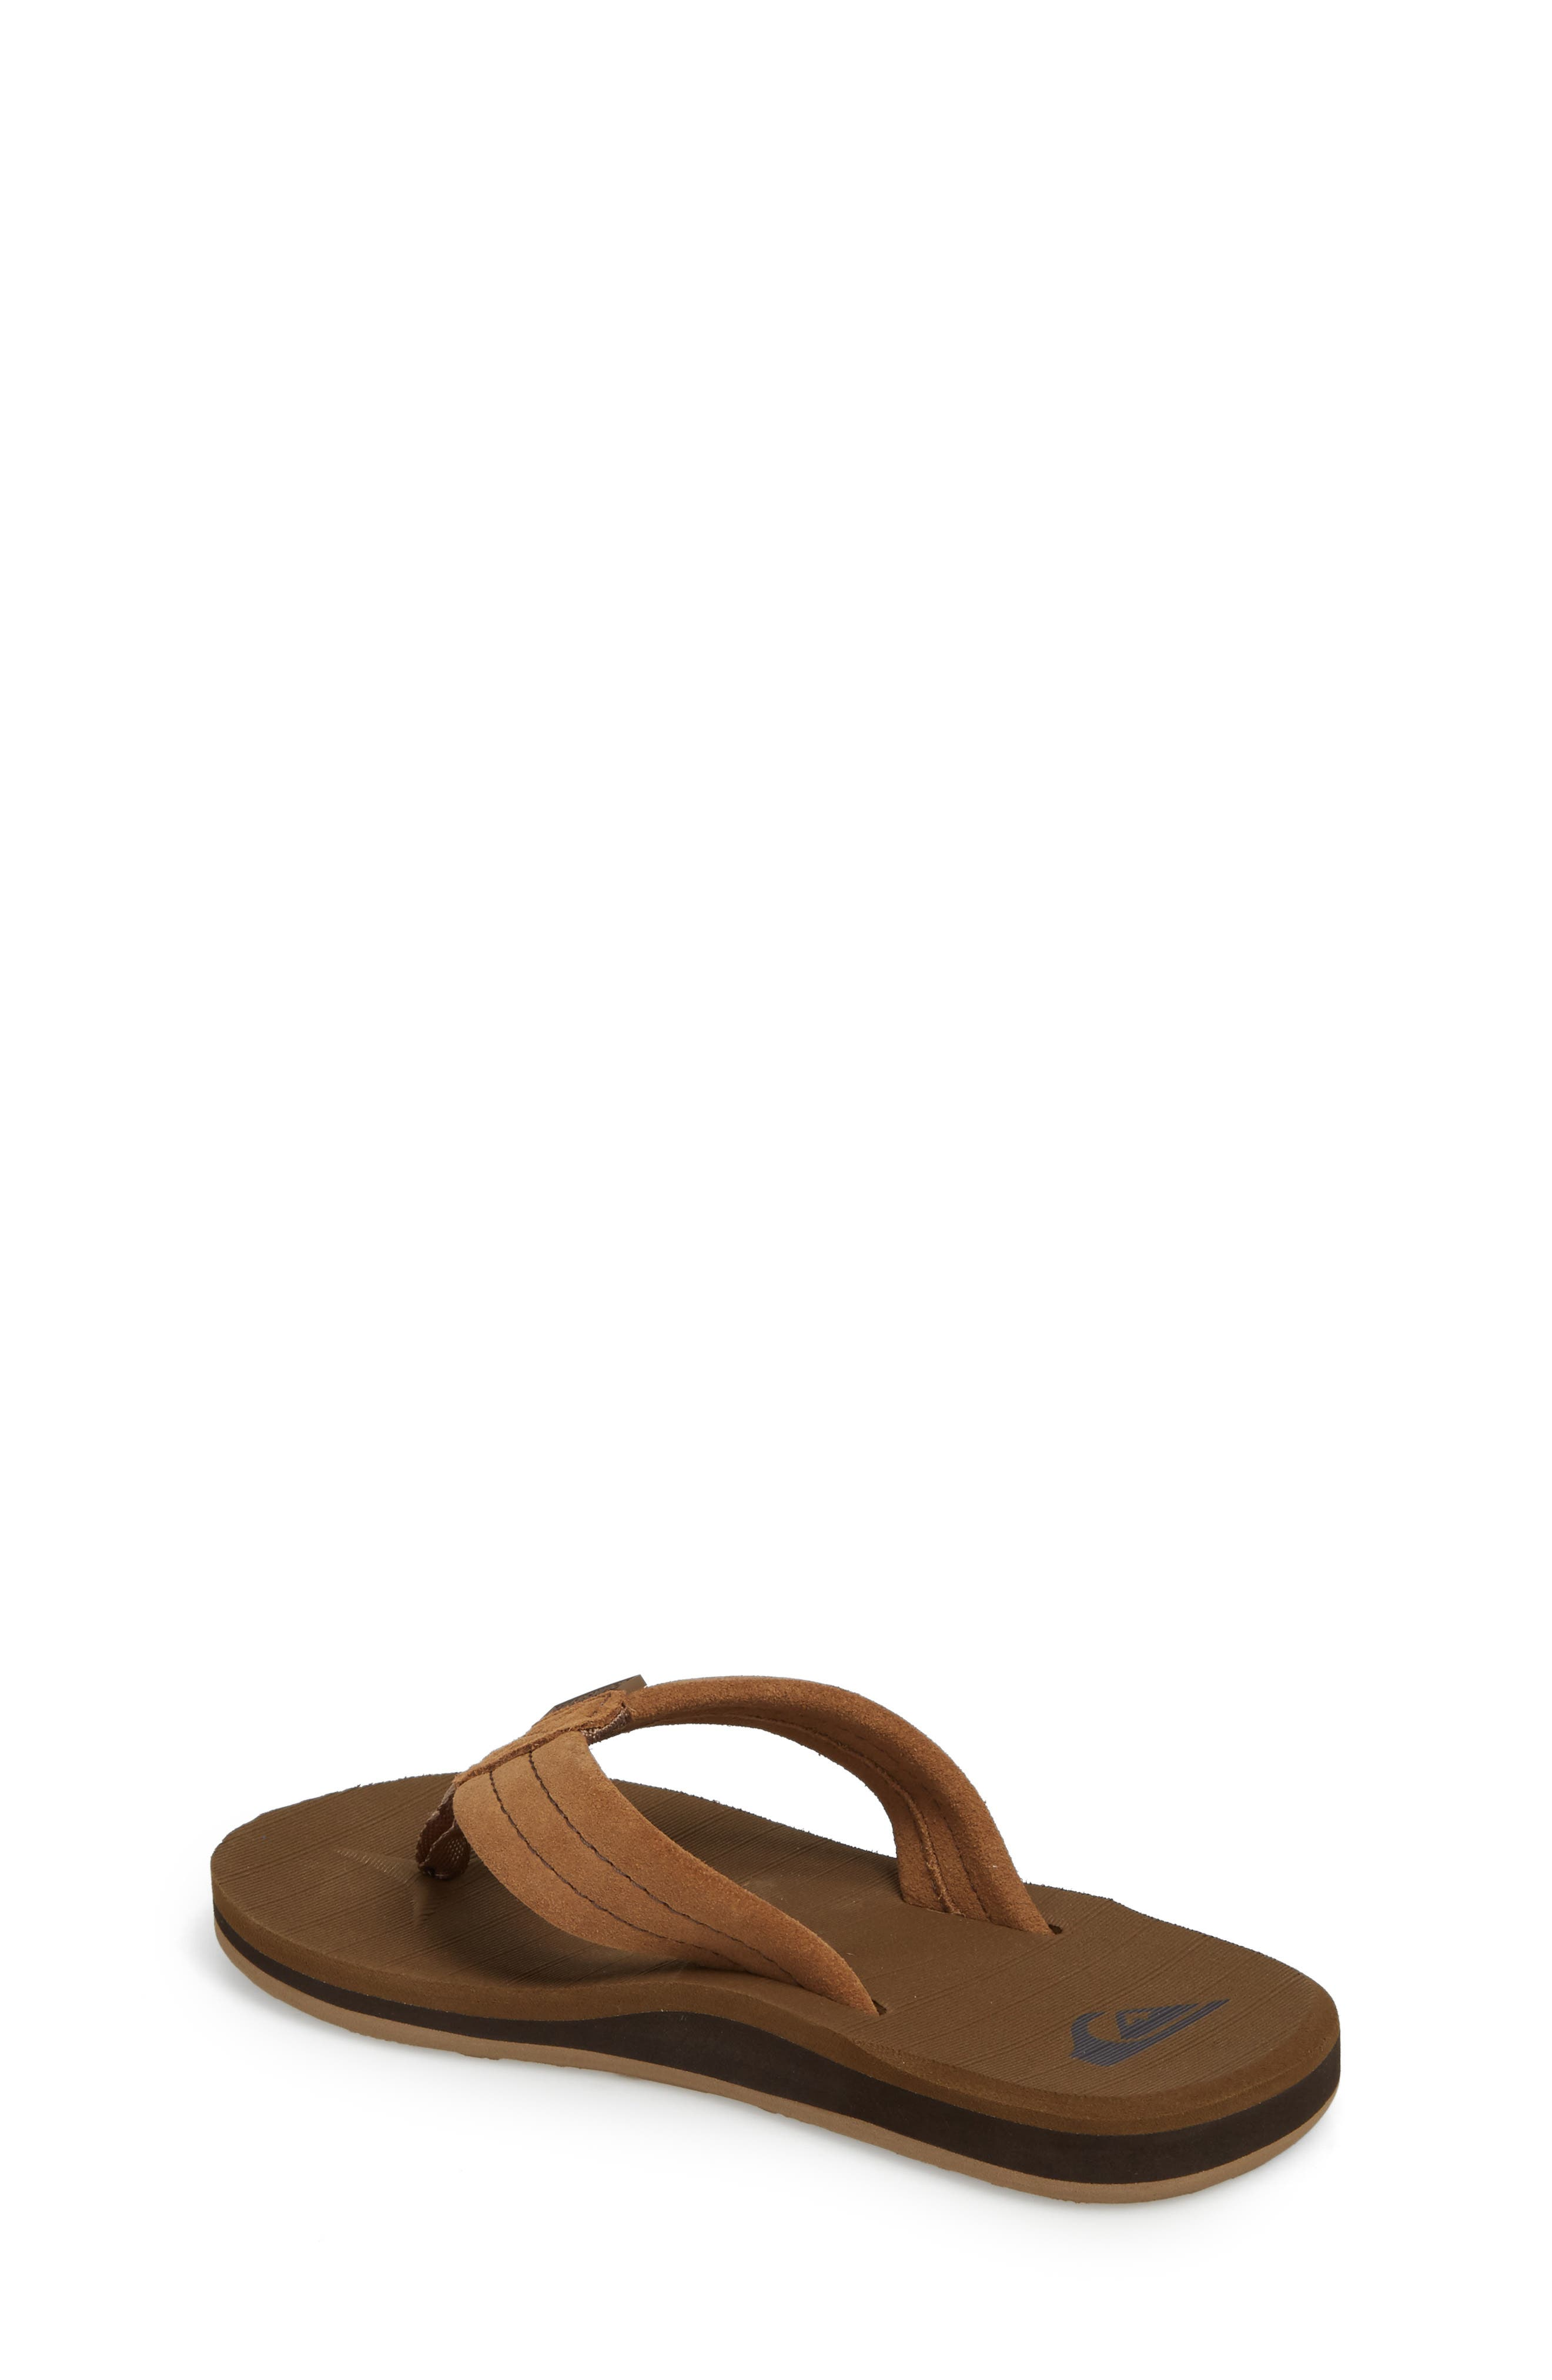 Carver Flip Flop,                             Alternate thumbnail 2, color,                             TAN